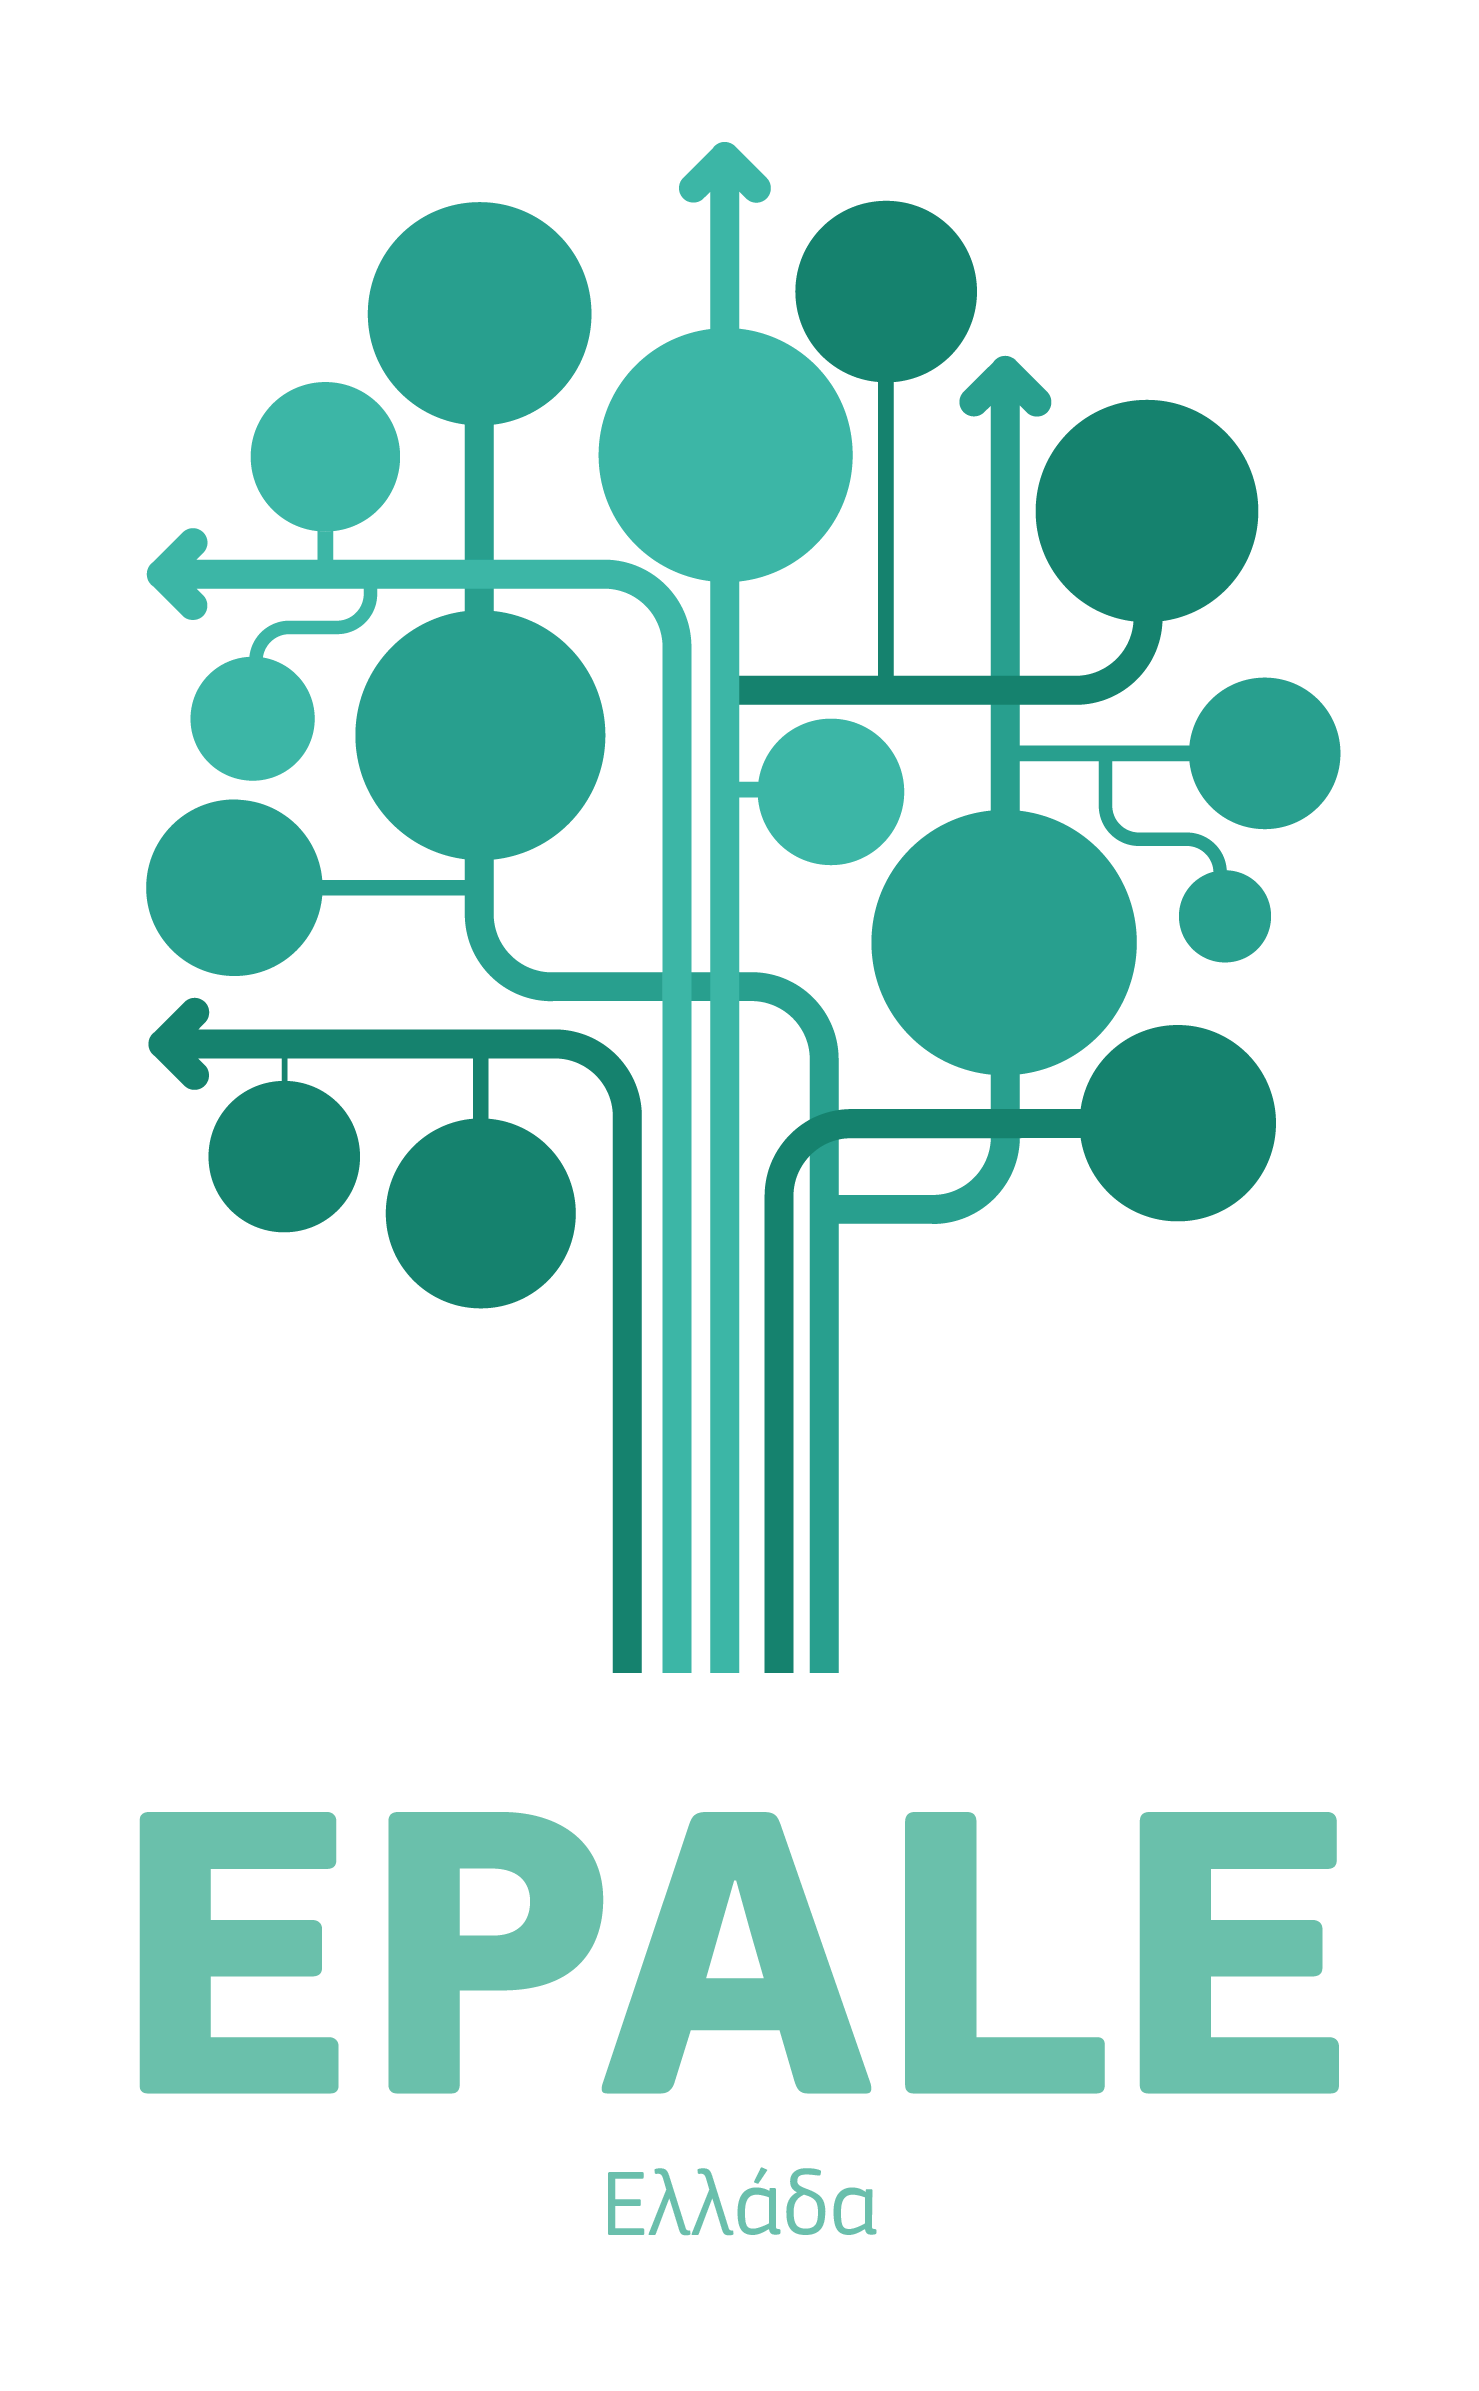 EPALE_NSS_-_Wordmark_and_Tree_Greece.png